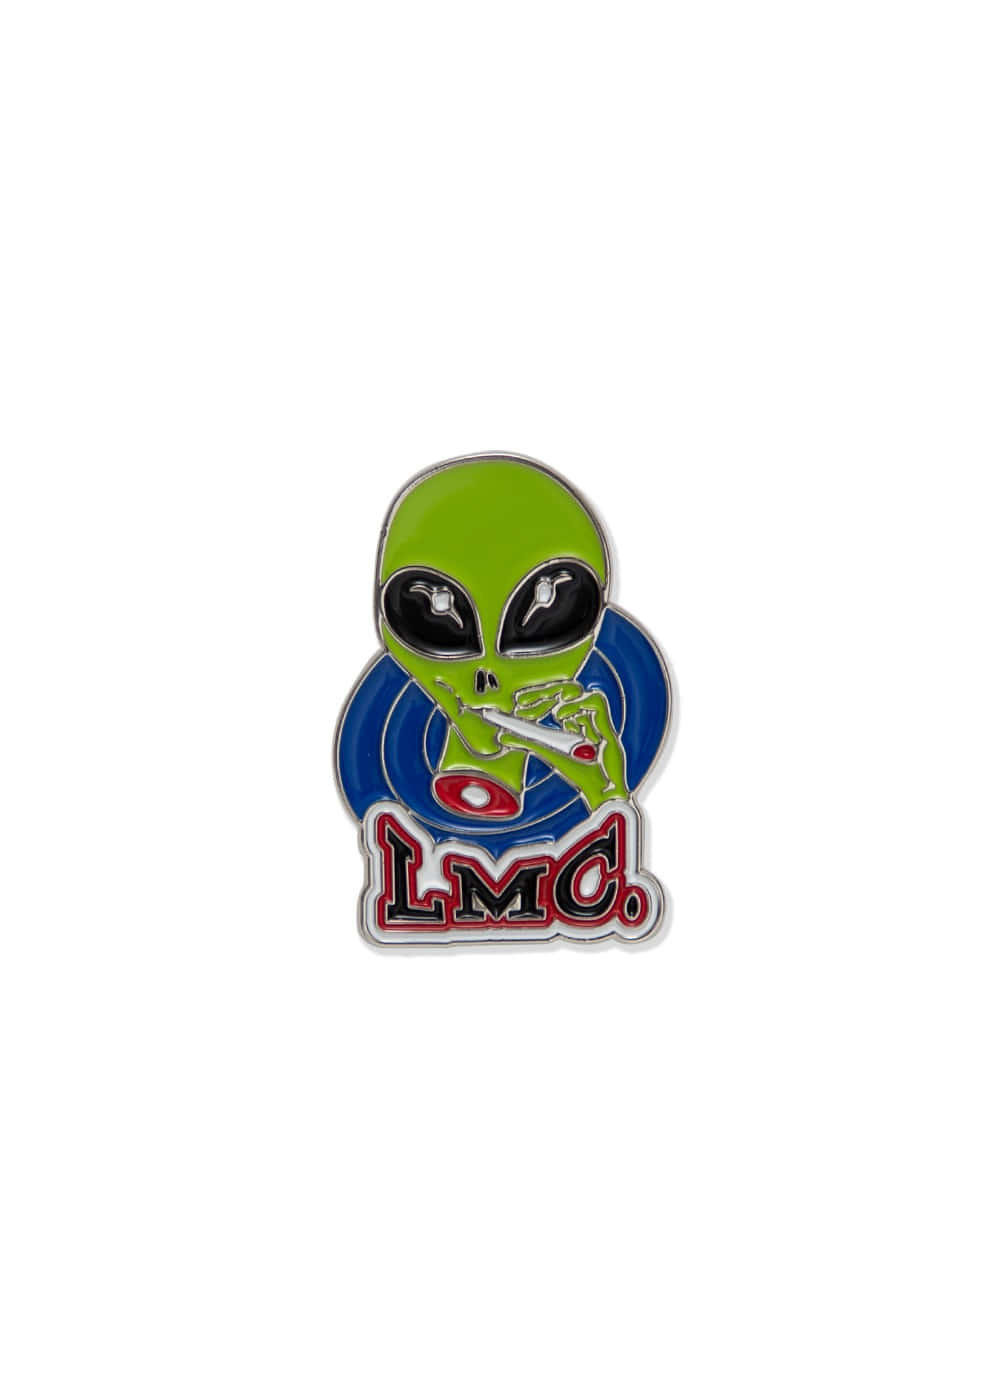 LMC ALIEN PIN BADGE